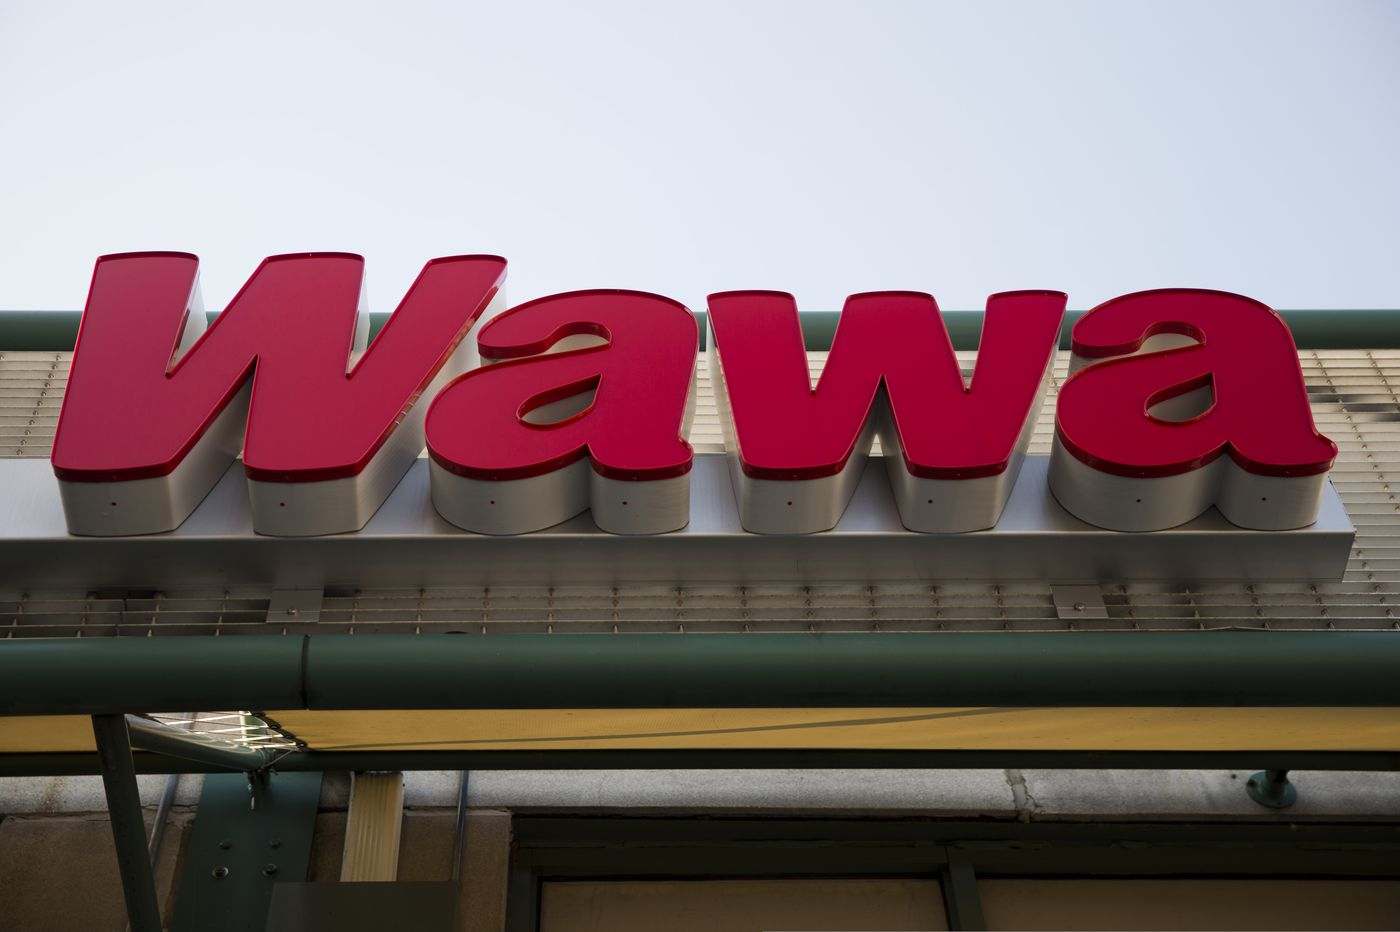 Wawa's data breach hits close to home but reflects global problem | Editorial